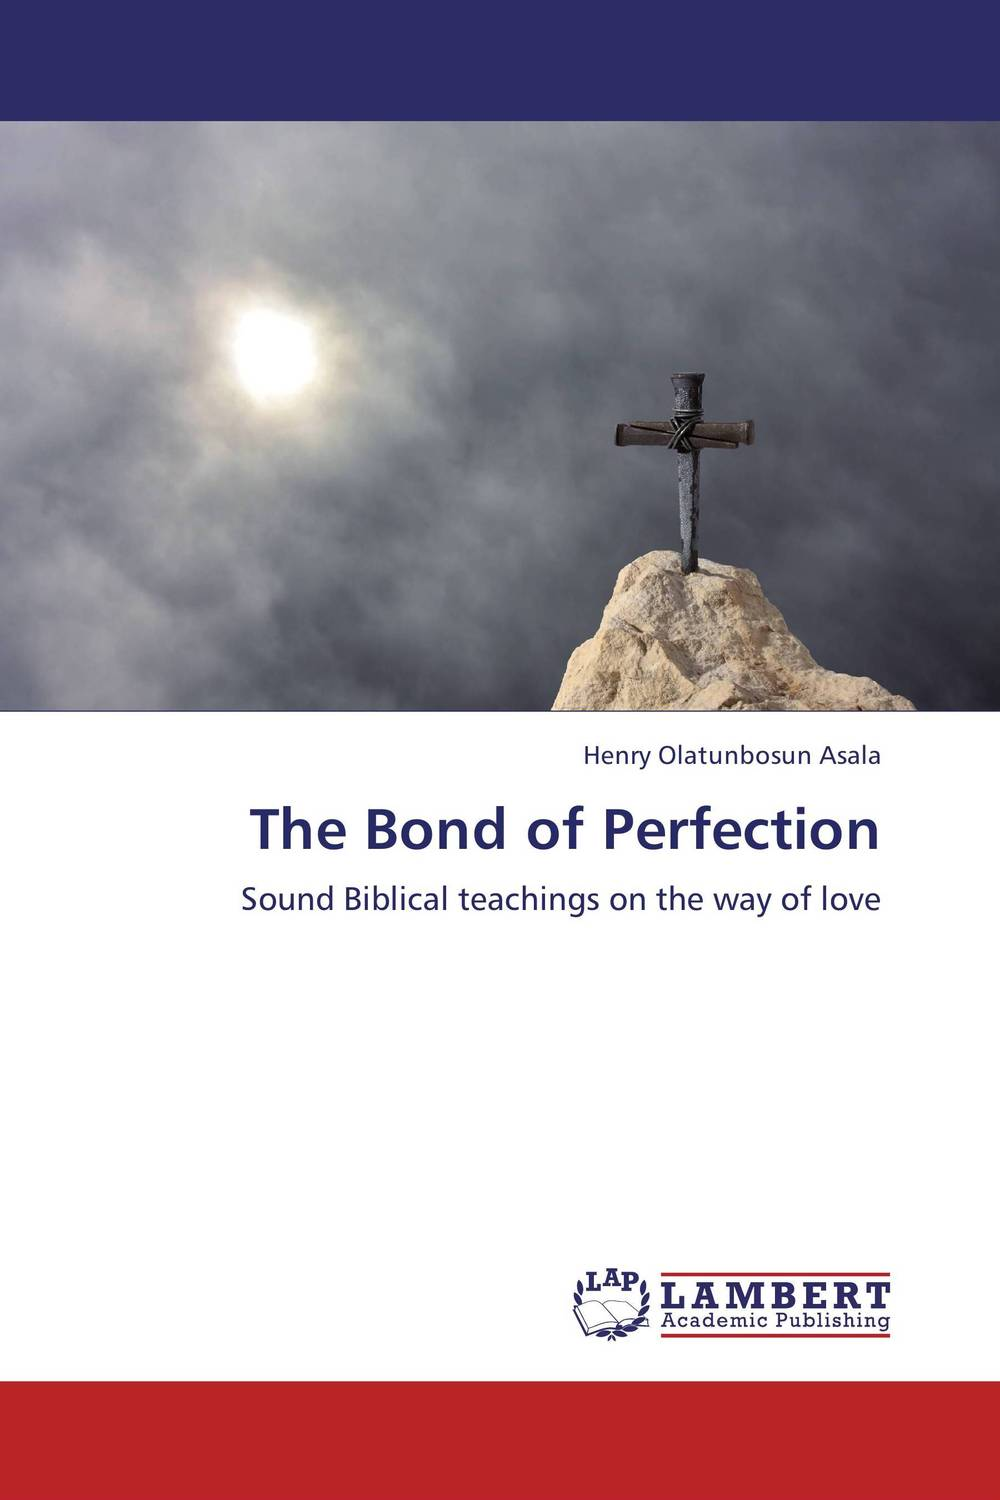 The Bond of Perfection